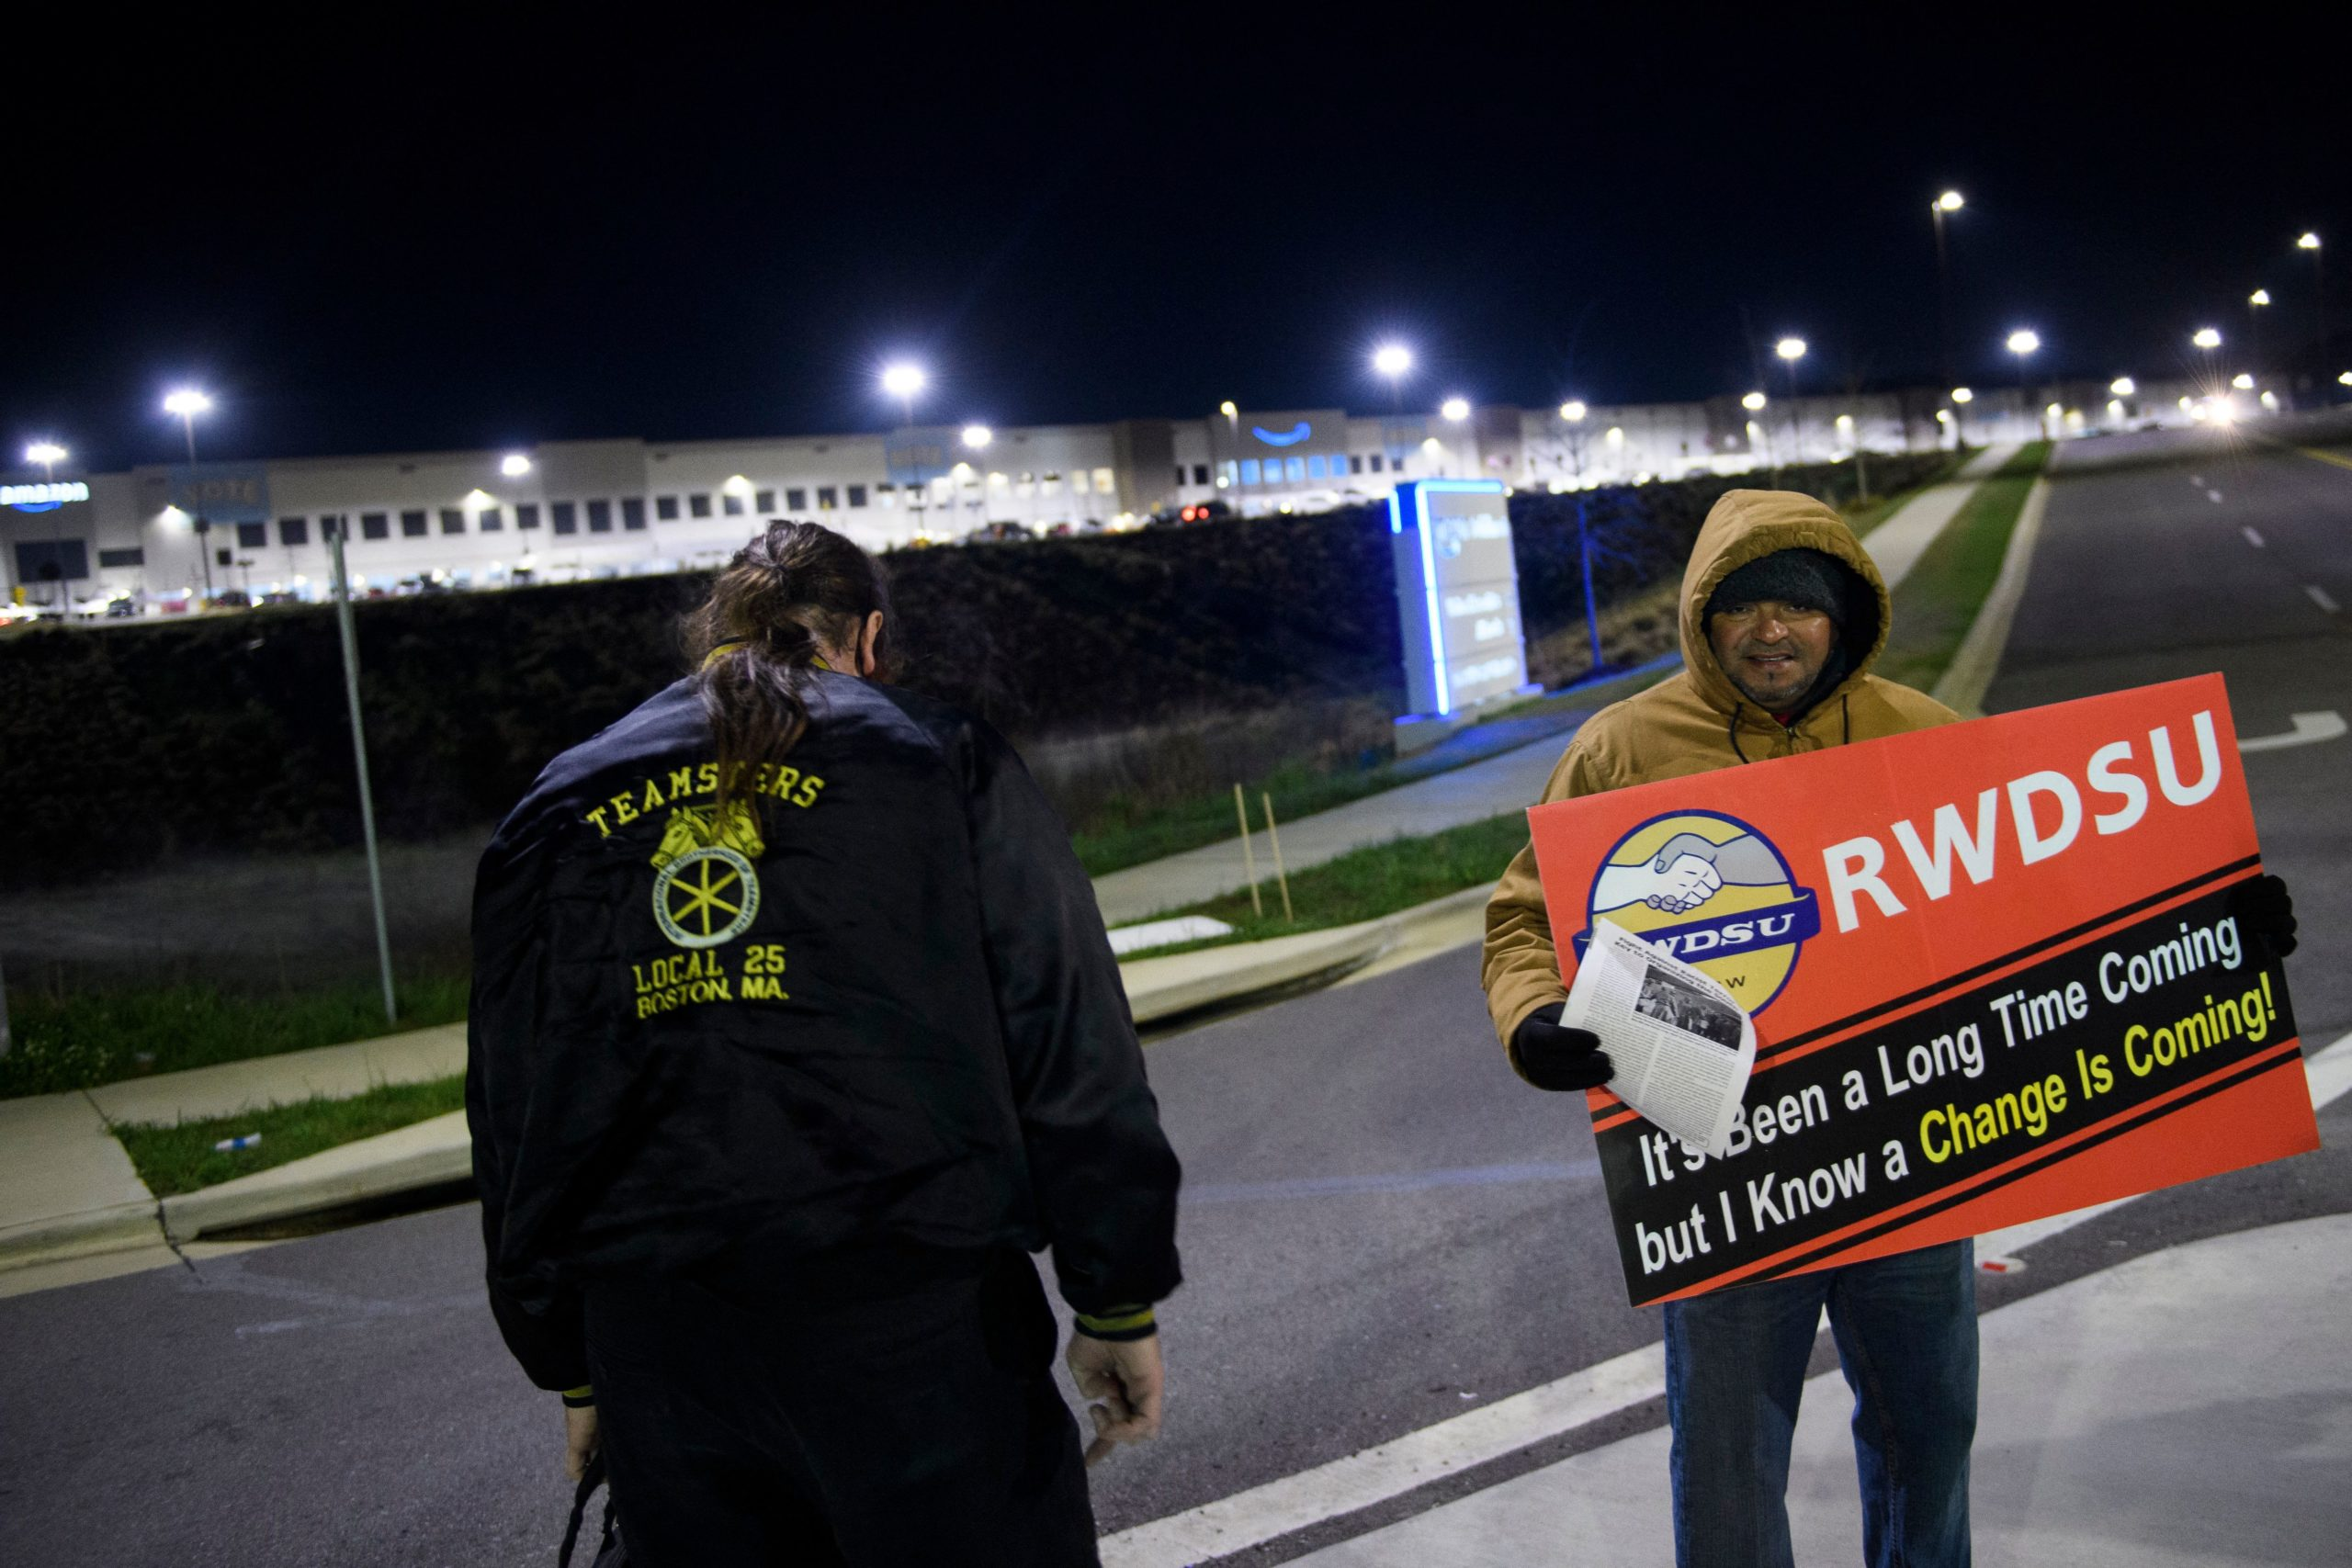 Union supporters distribute information outside the Amazon fulfillment center in Bessemer, Alabama on March 29. (Patrick T. Fallon/AFP via Getty Images)